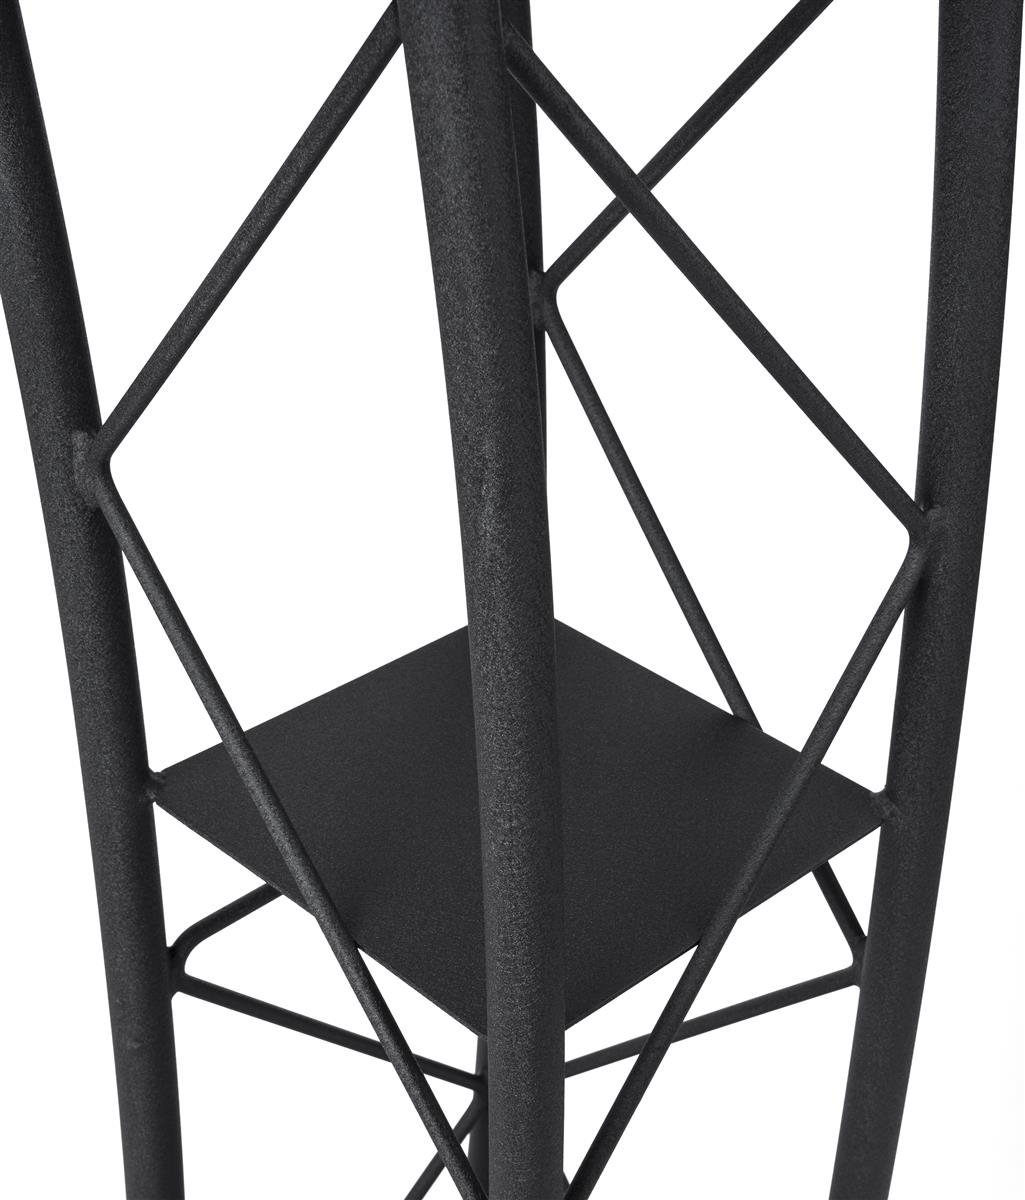 Displays2go Black Aluminum and Steel Truss Lectern with Curved Design and Built-In Shelf Textured Finish LCTTACBK 47-Inch Tall